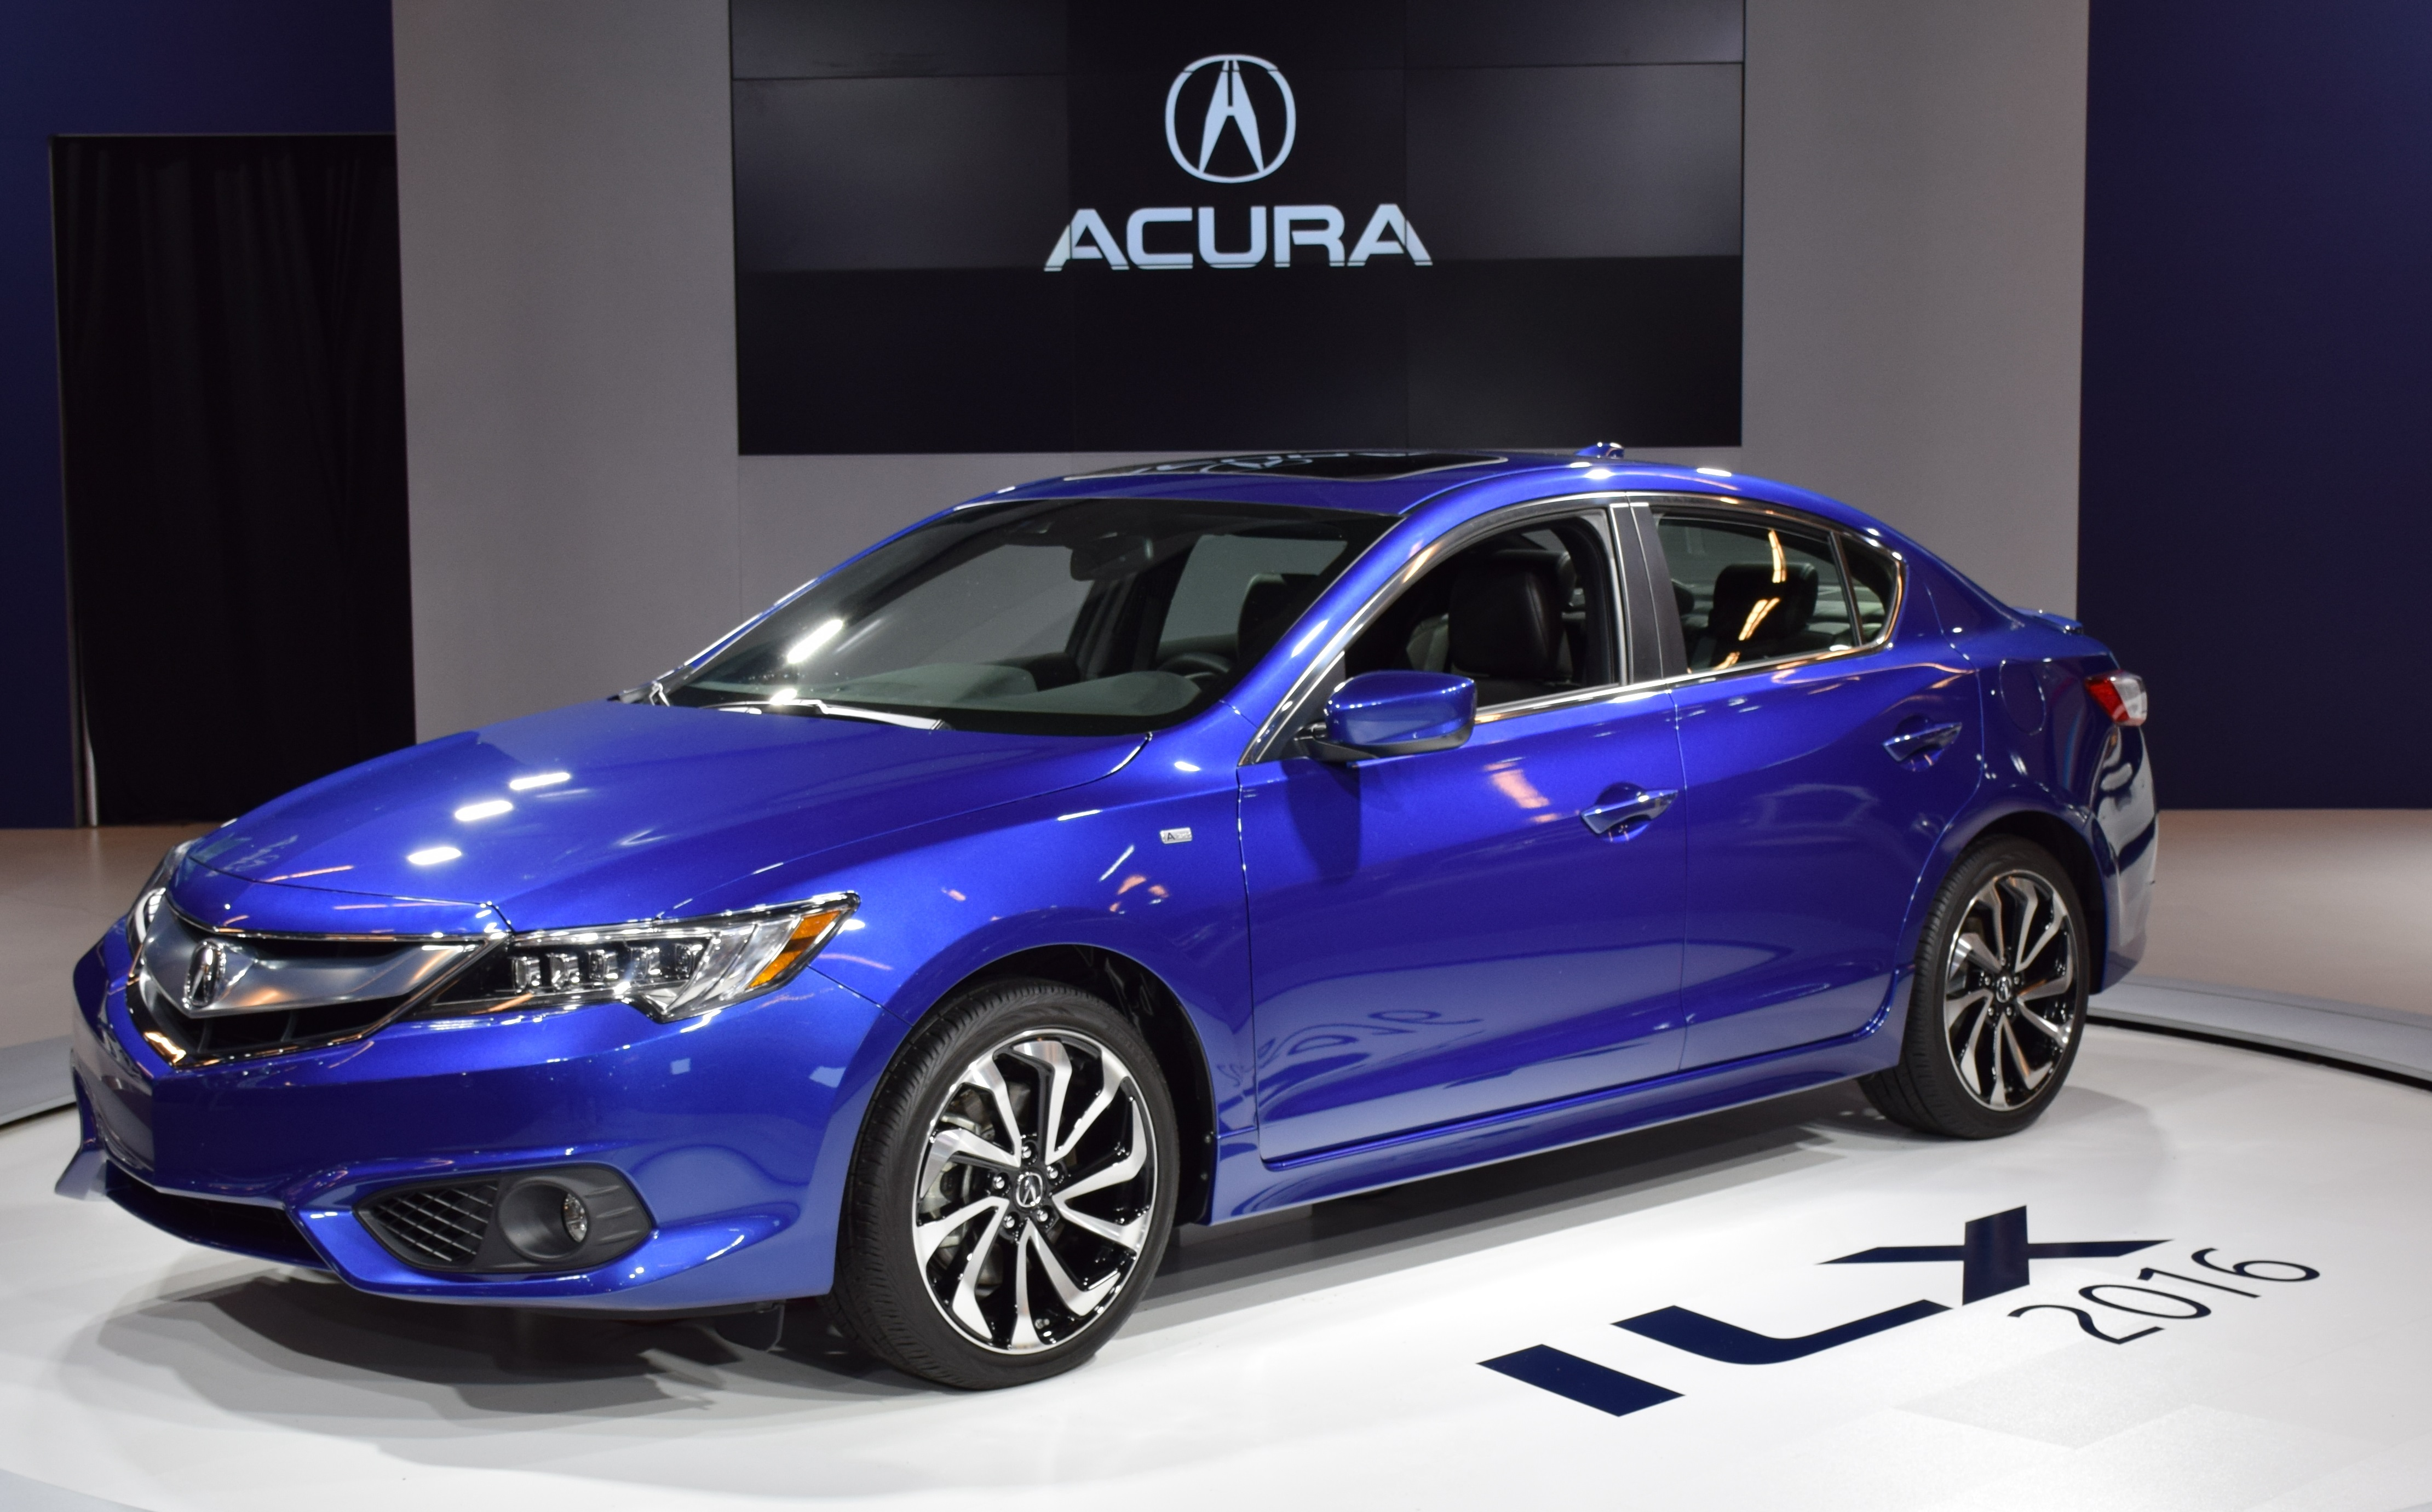 autonews rdx the brings chicago acura models in auto heat debut at world